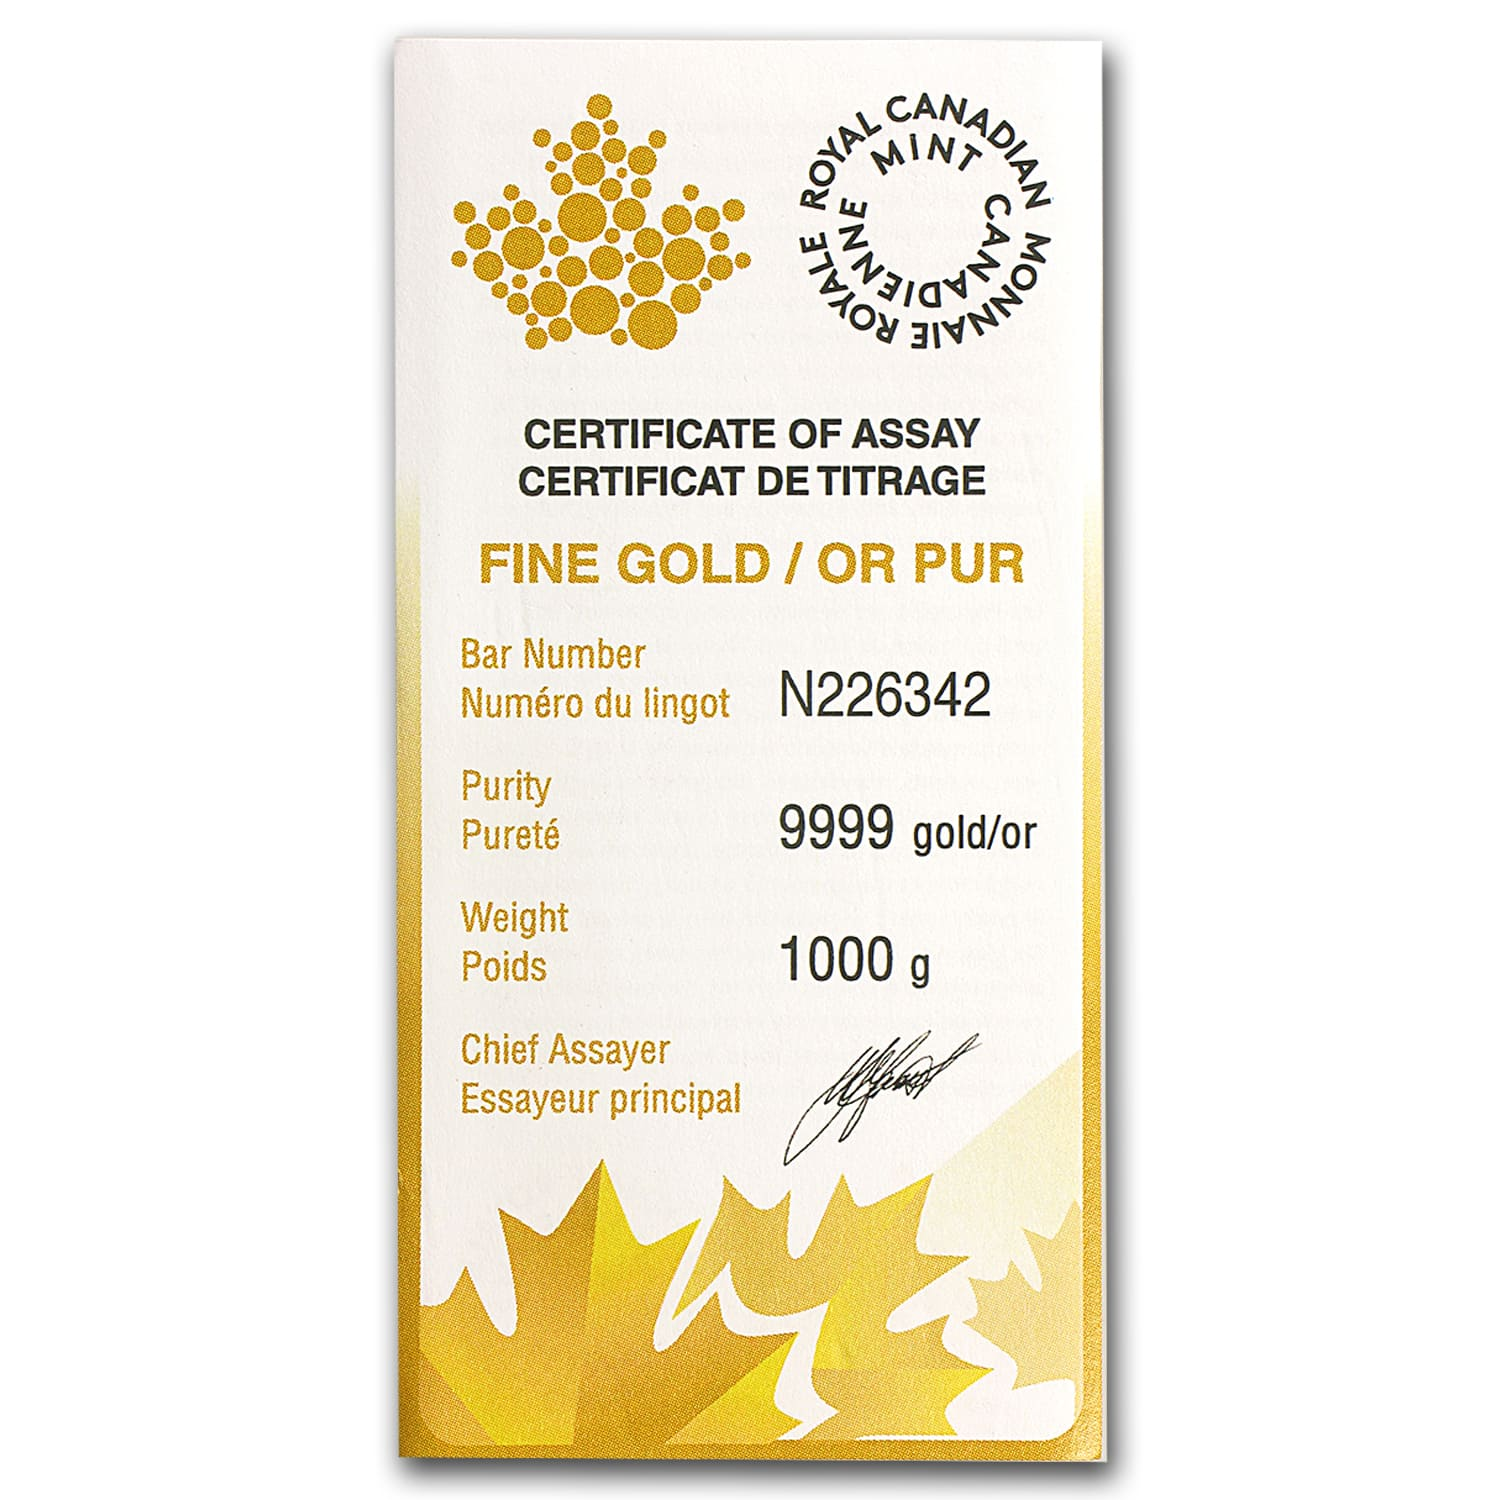 1 kilo Gold Bar - Royal Canadian Mint RCM (Aug 5th)